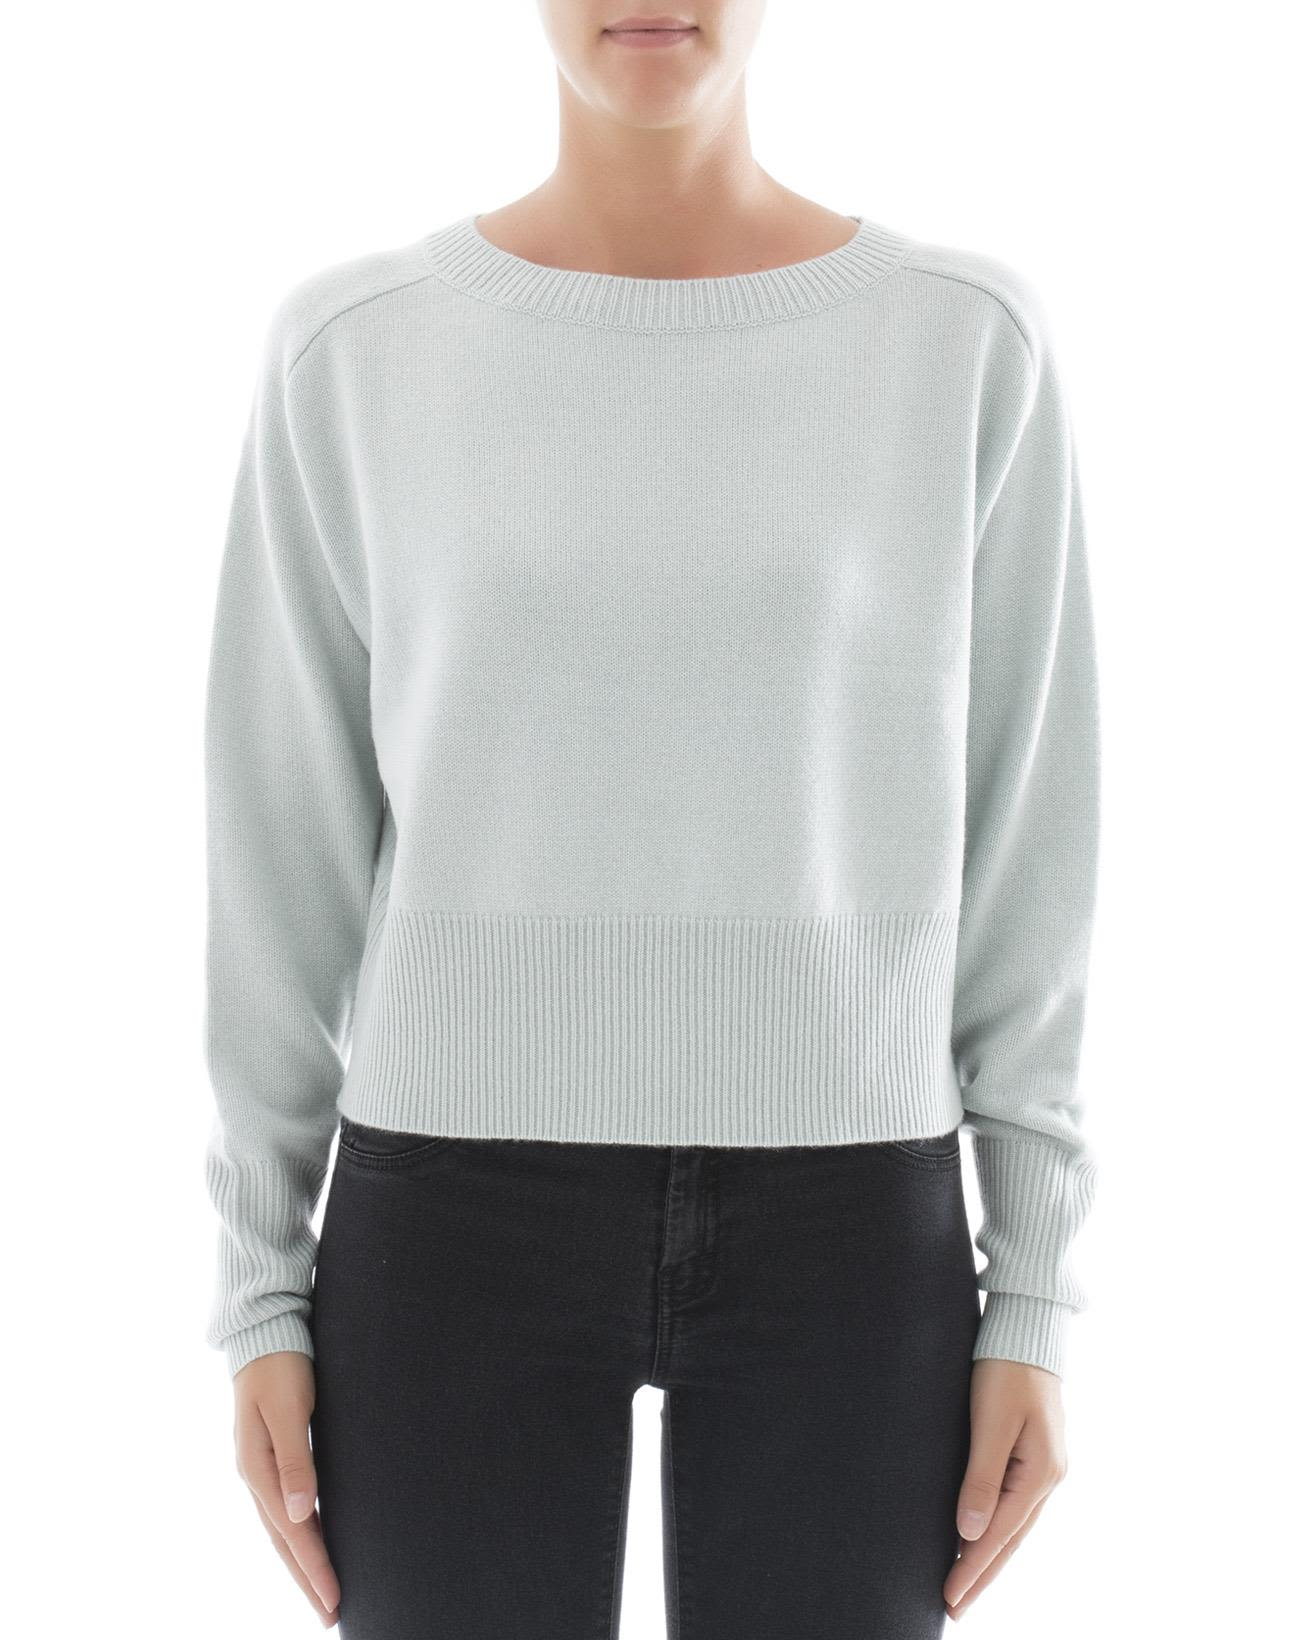 Light Blue Cachemire Sweatshirt